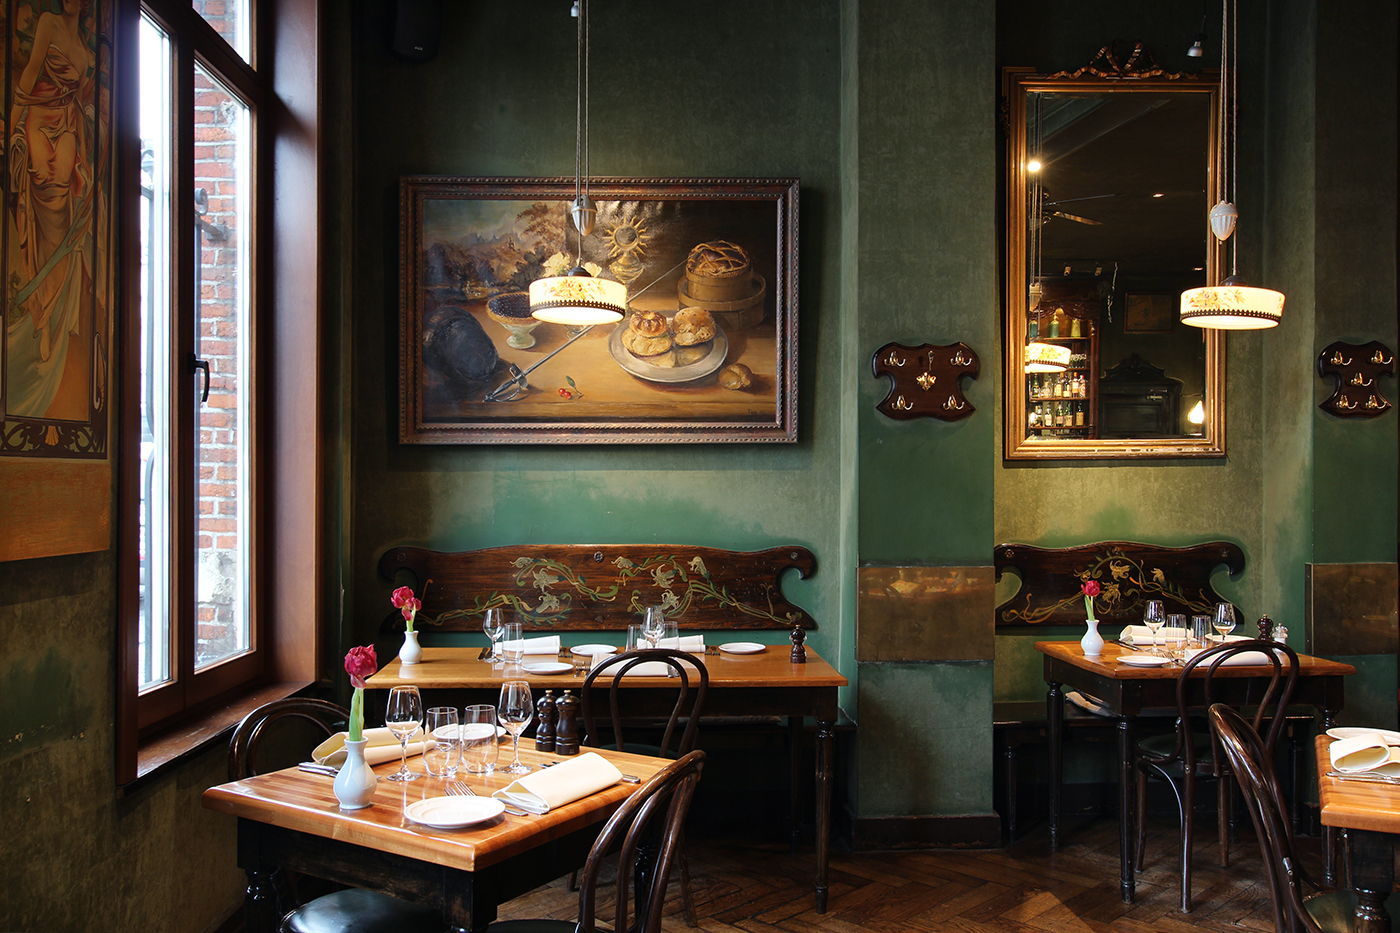 Brussels 39 kitchen the guide to food with style - Restaurant cuisine belge bruxelles ...